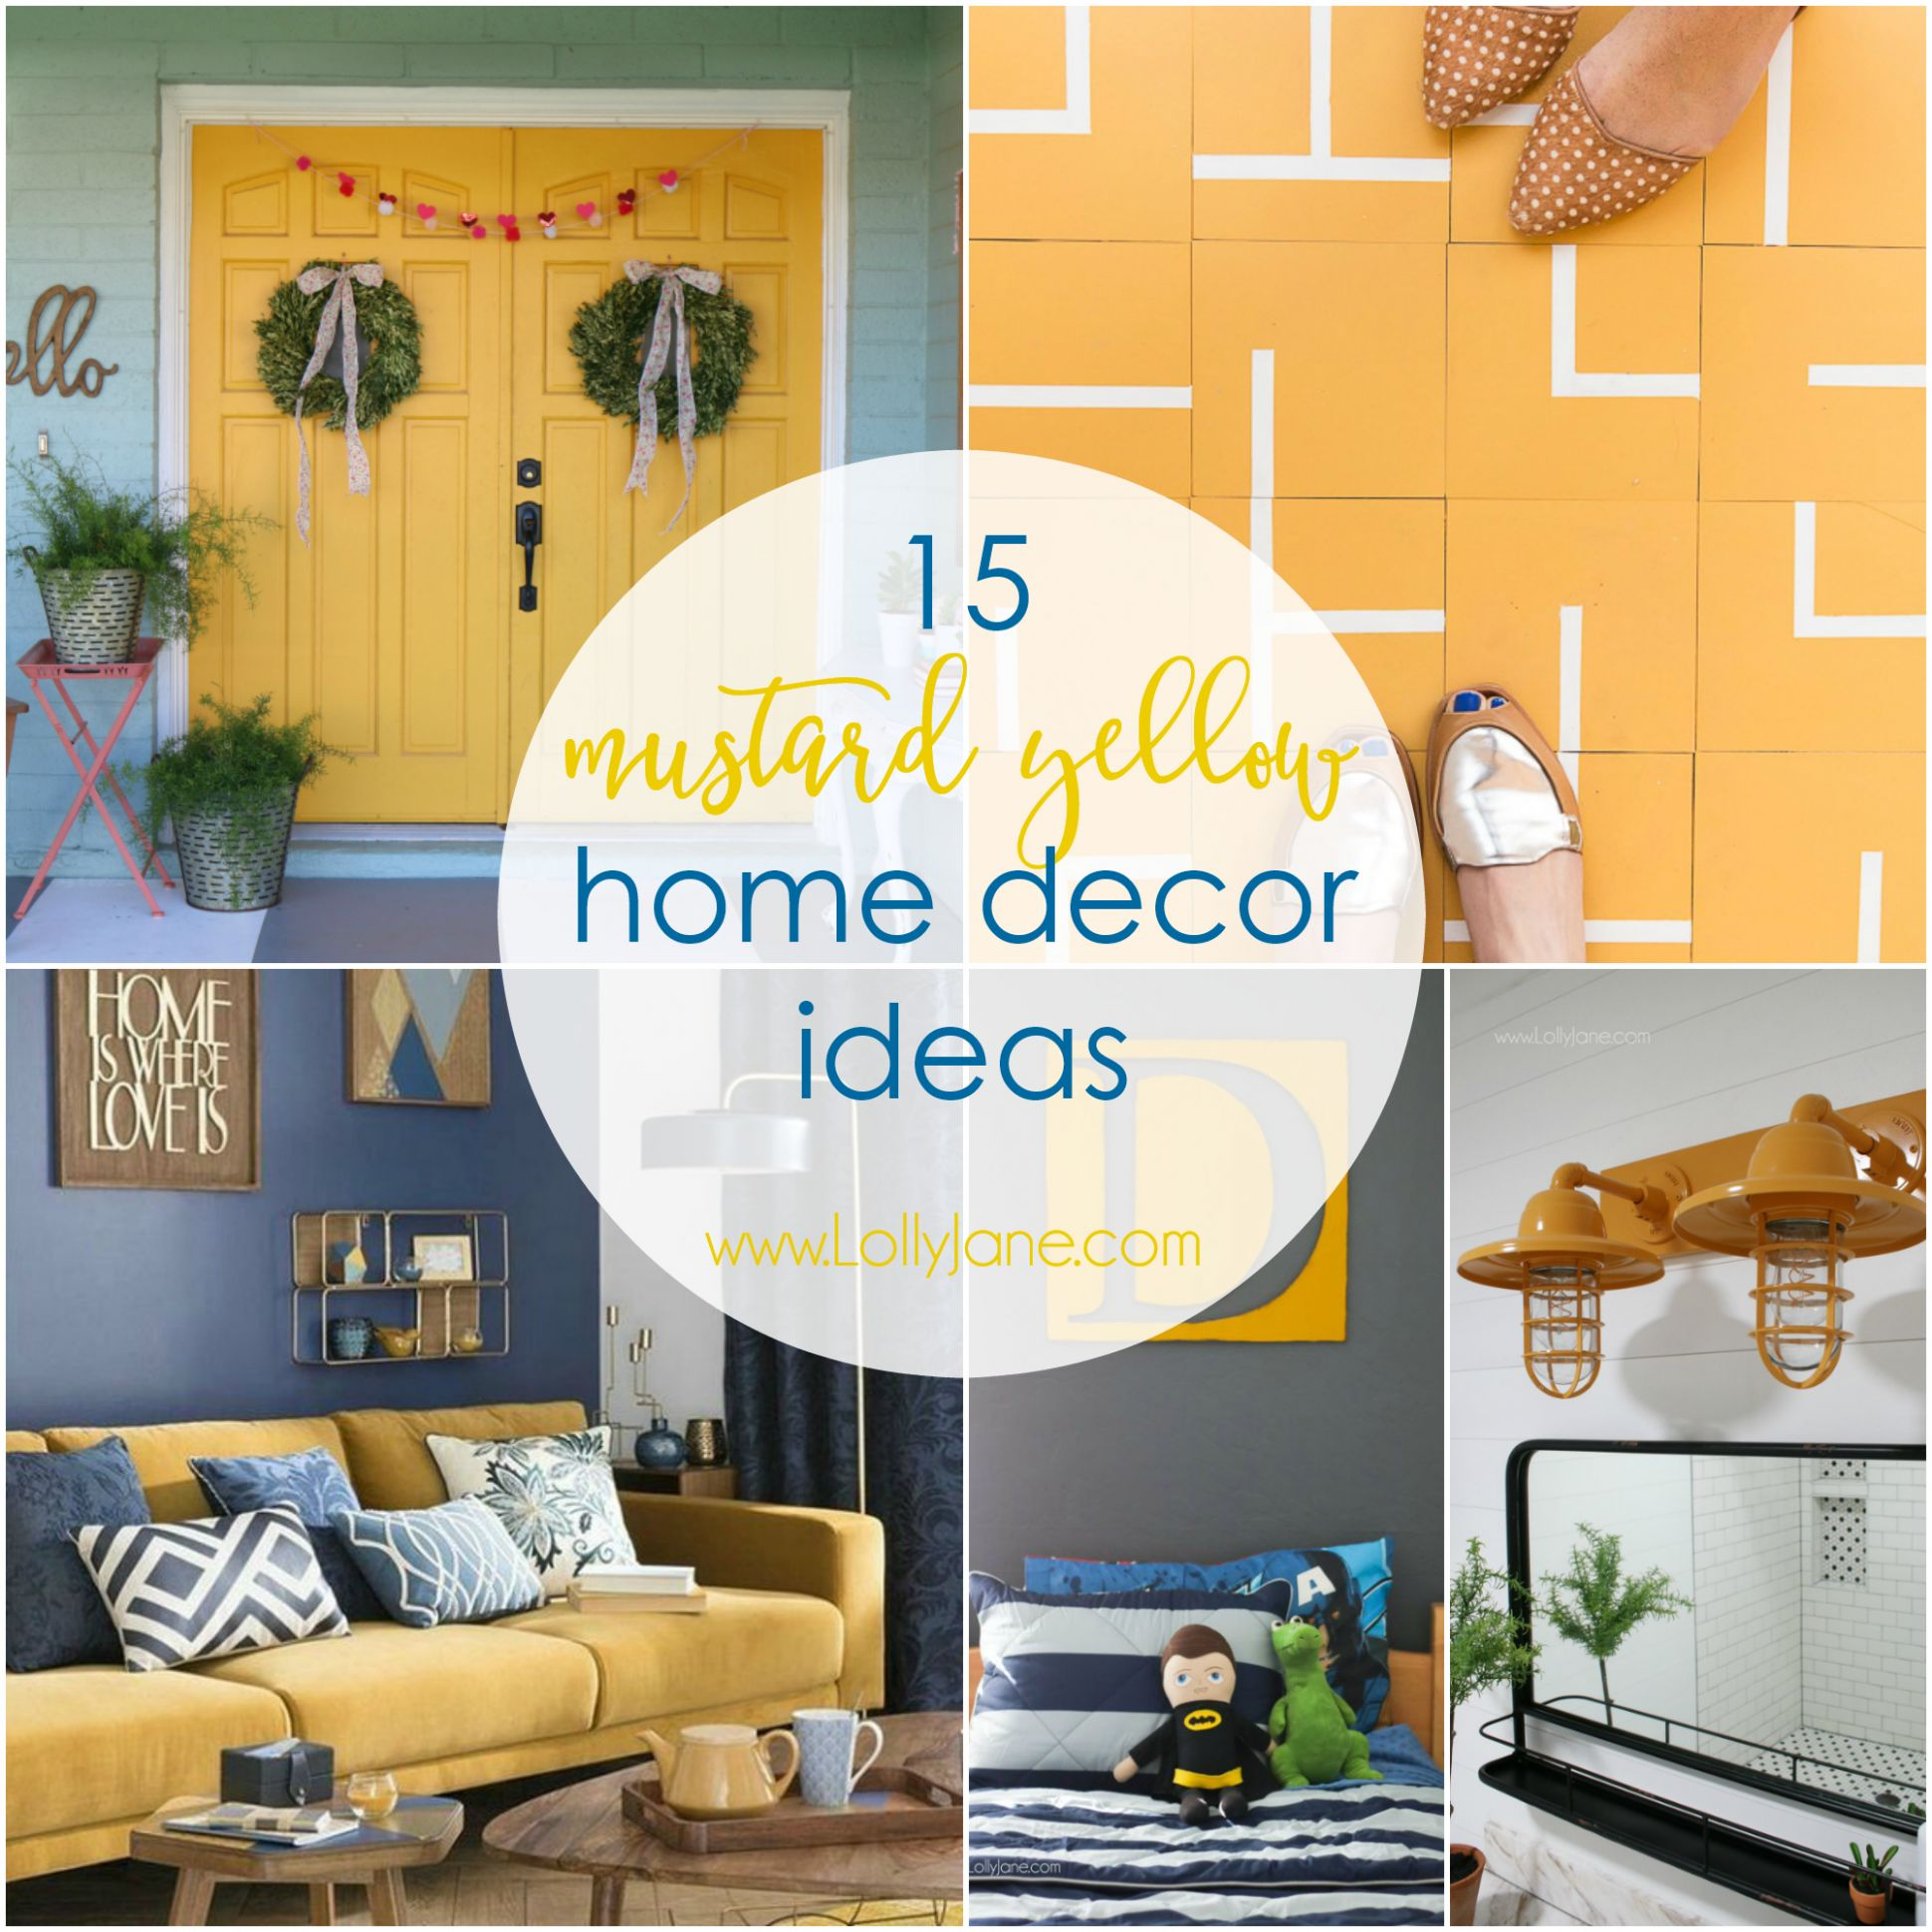 10 mustard yellow home decor ideas - Lolly Jane